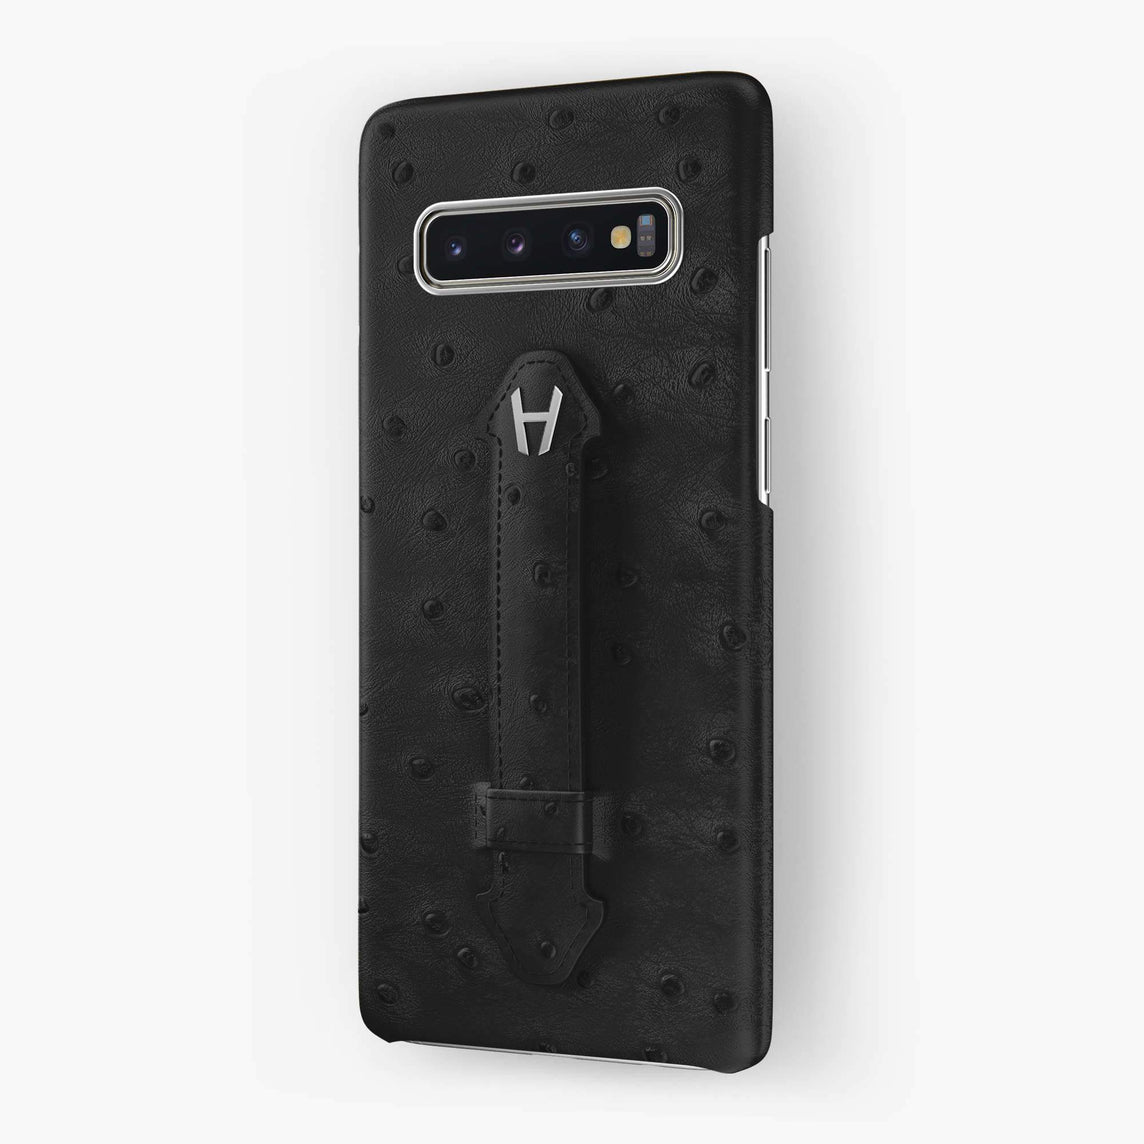 Ostrich Finger Case Samsung S10 | Grey Anthracite - Stainless Steel without-personalization